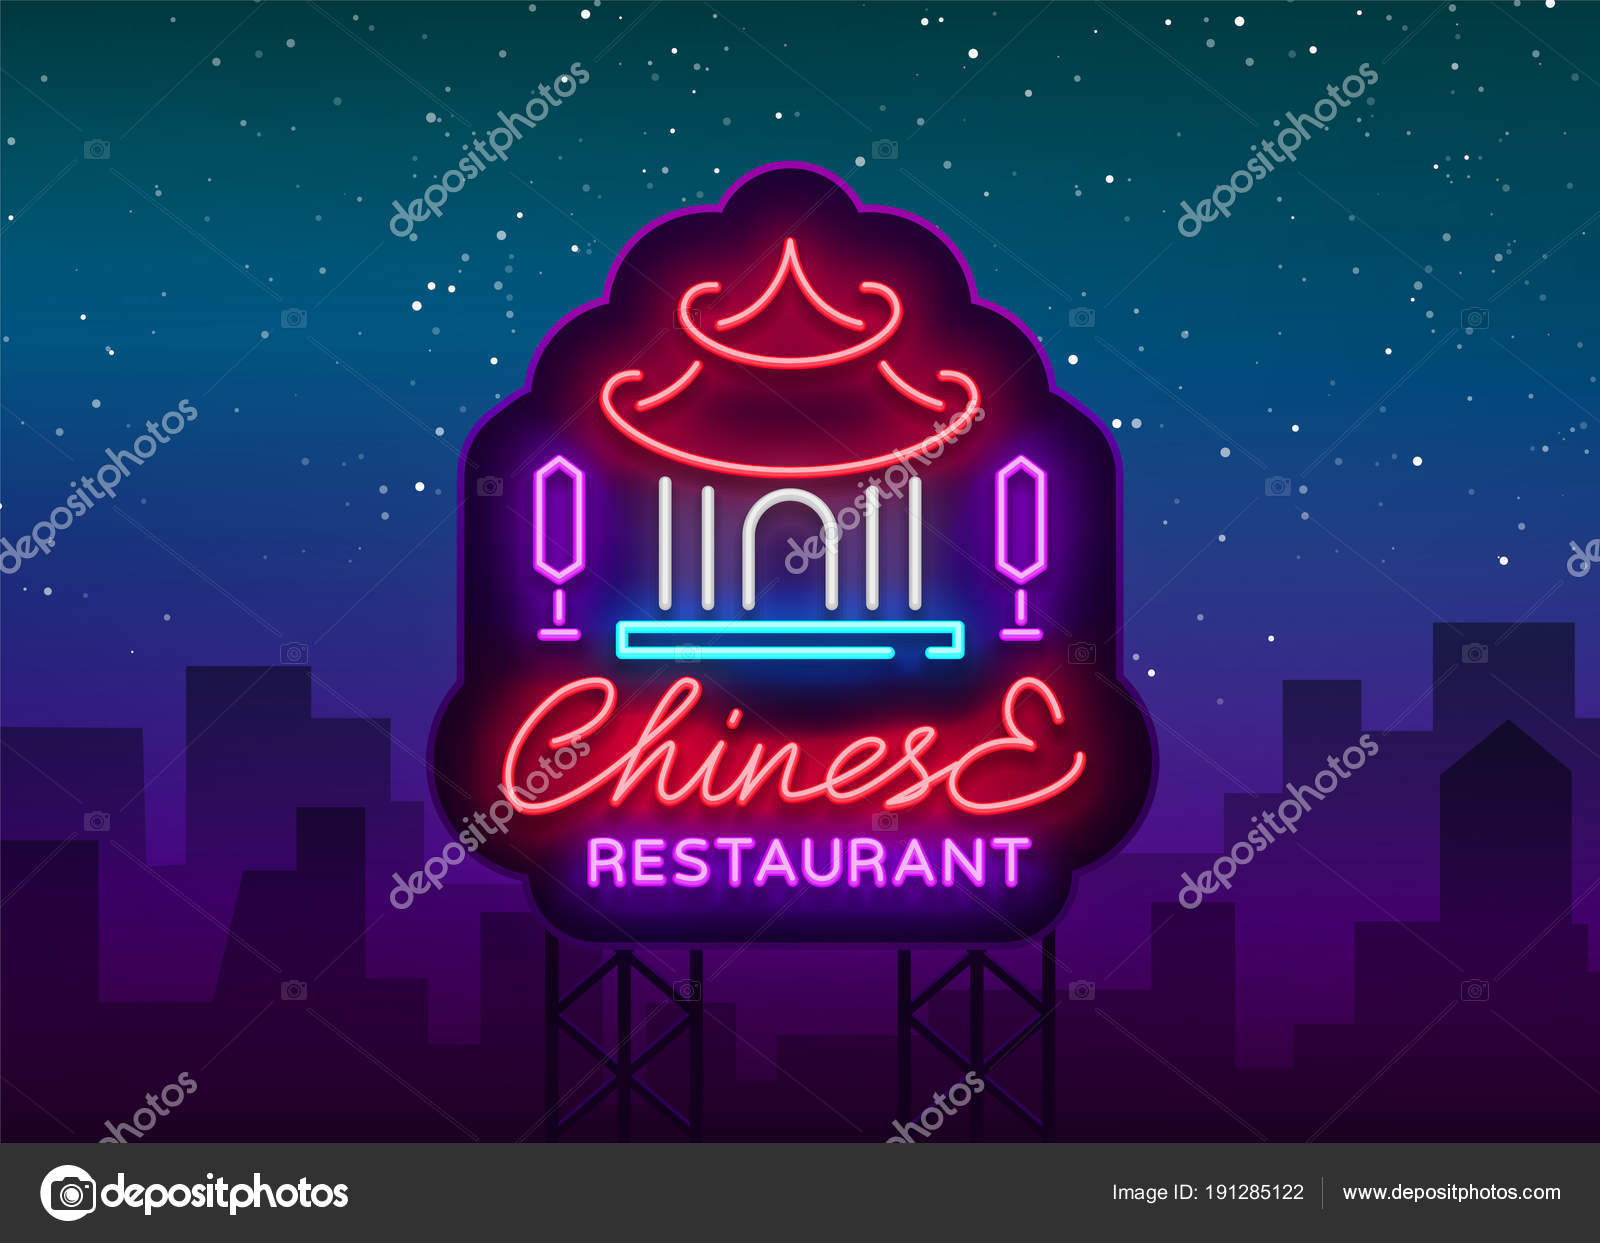 Chinese Restaurant Is A Neon Sign Vector Illustration On Chinese